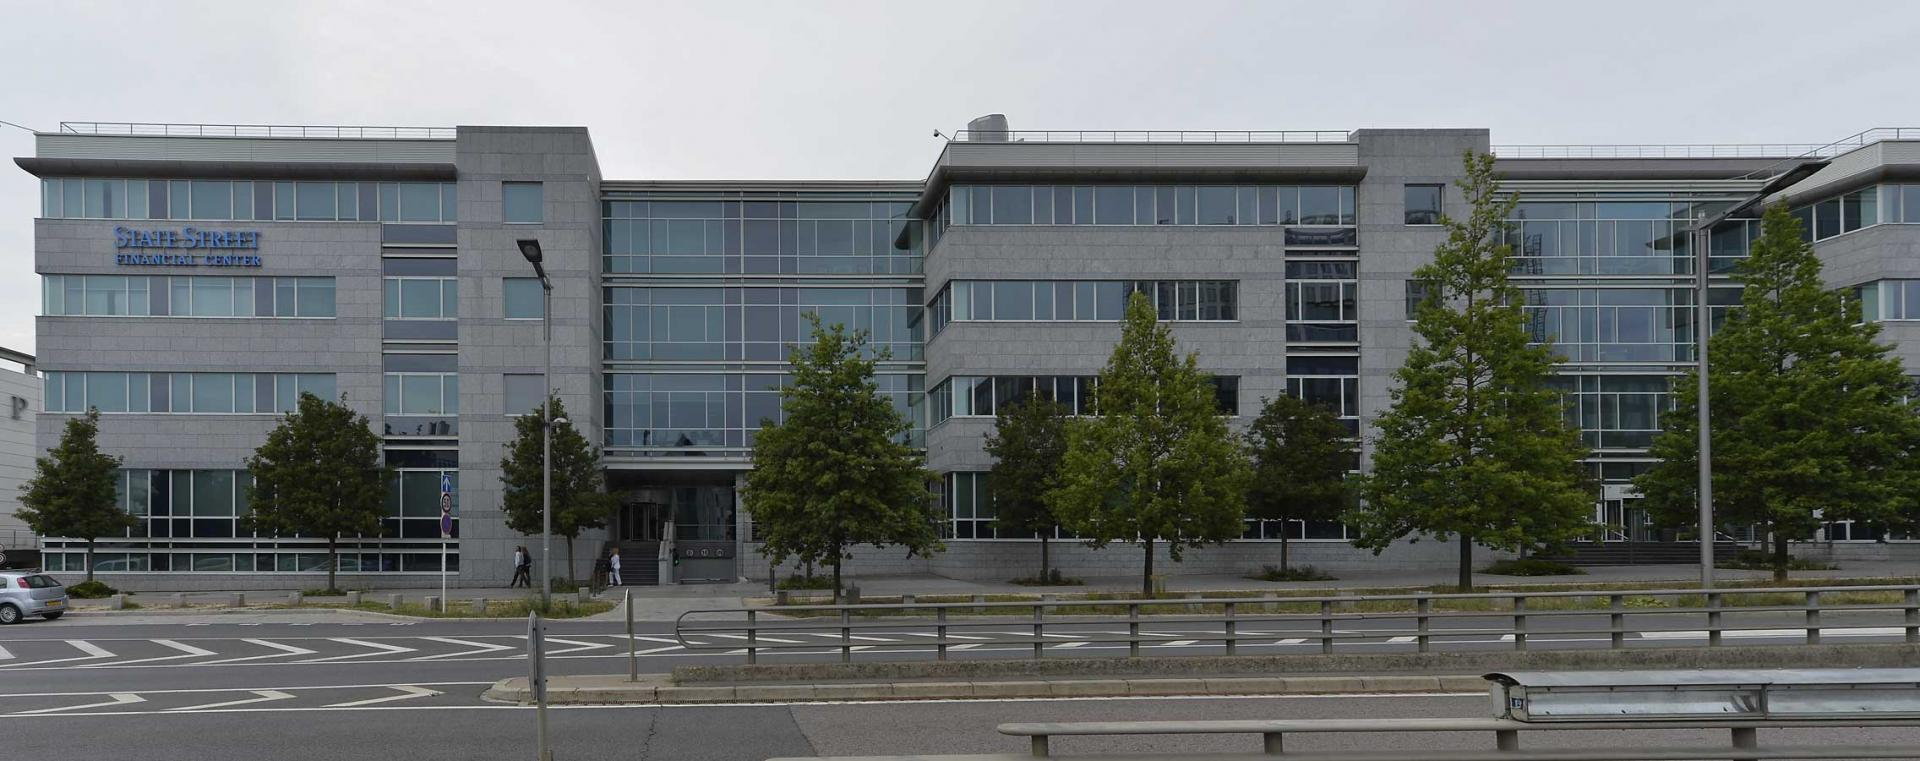 State Street Bank Kirchberg - Luxembourg - Image #1